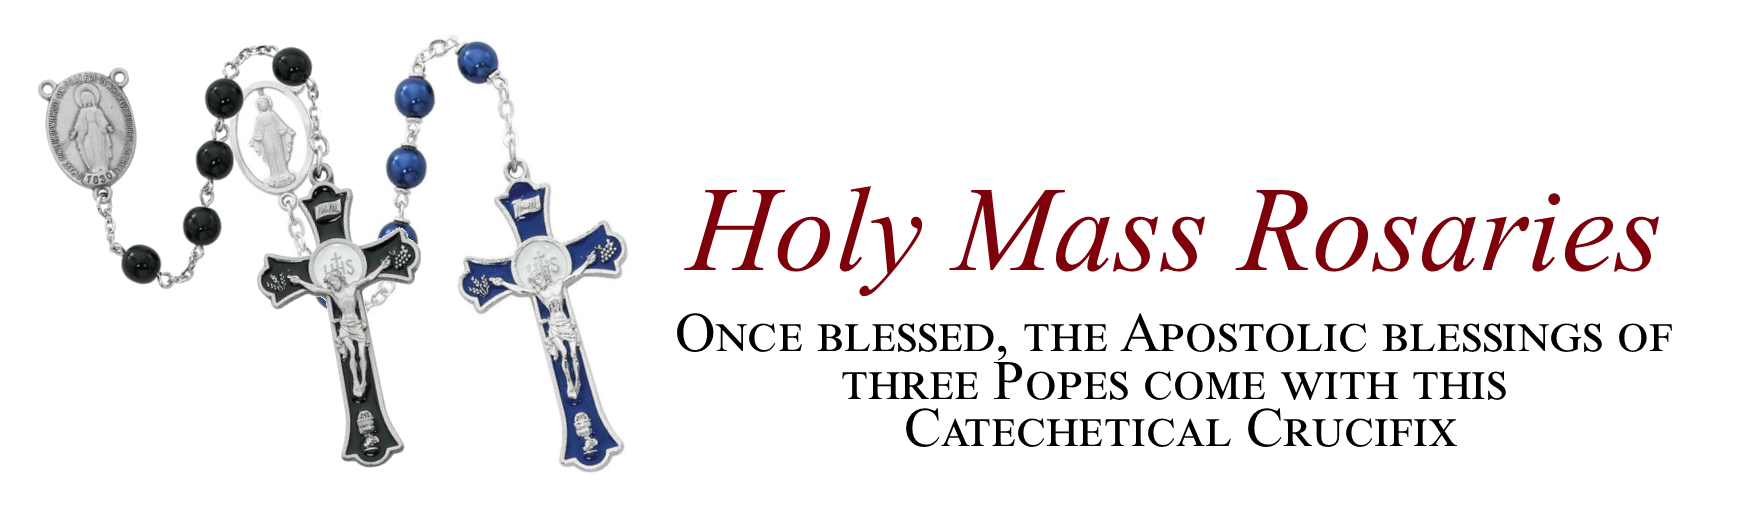 Holy Mass Rosaries